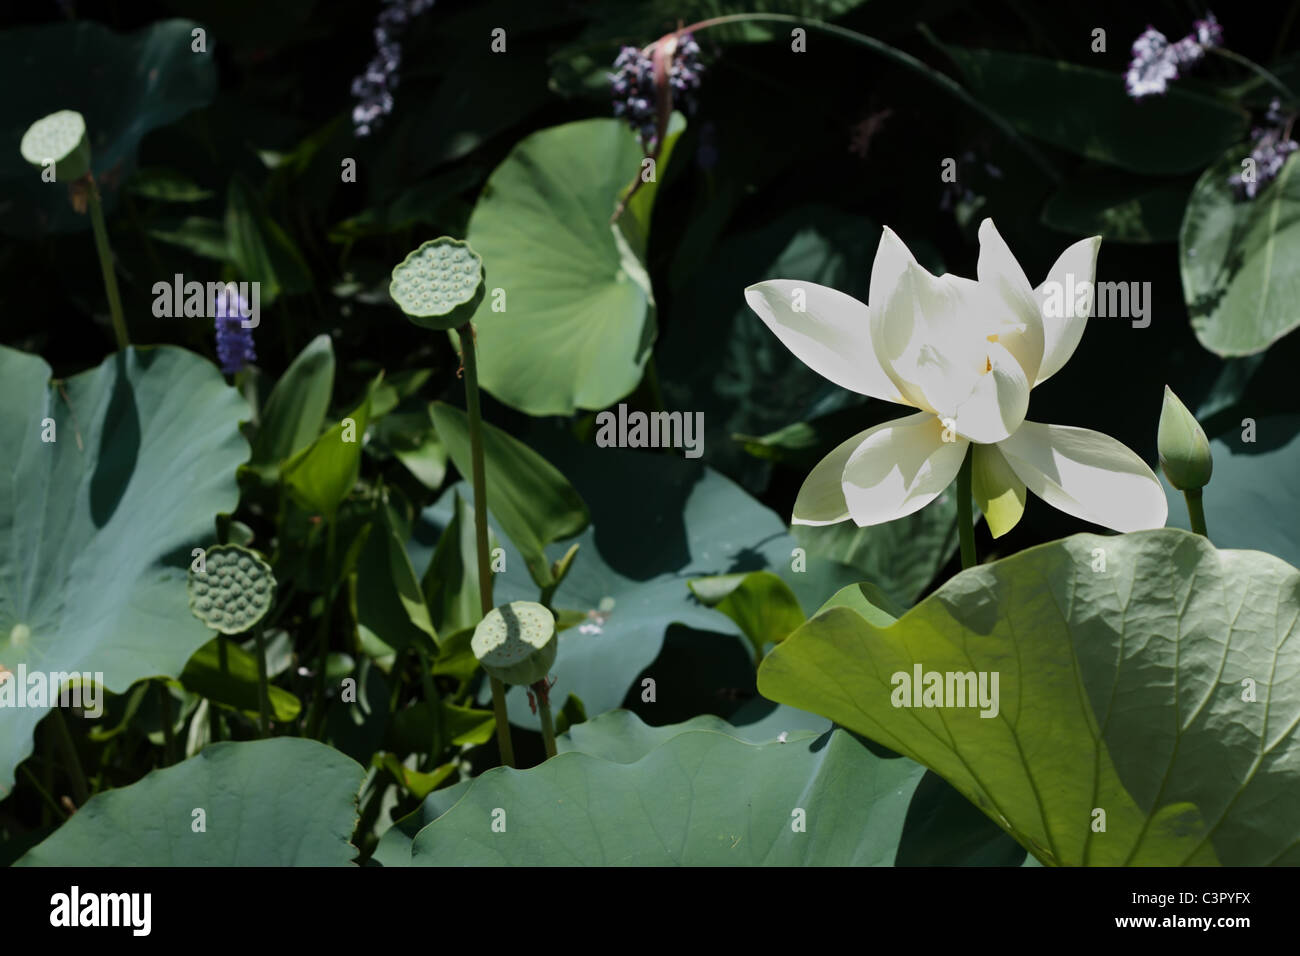 Indian lotus flower leaves stock photos indian lotus flower leaves lotus flower with green seeds and leaves stock image mightylinksfo